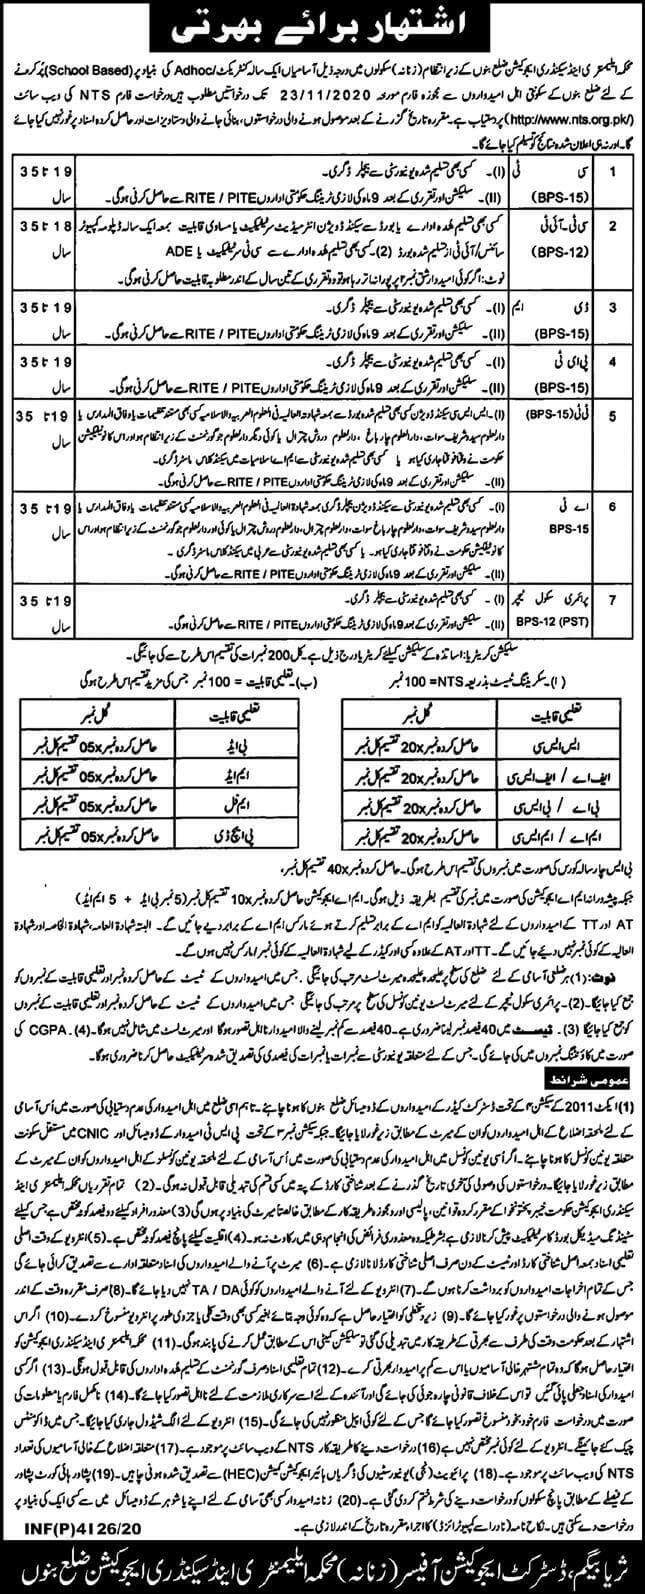 Elementary and Secondary Education Bannu Jobs 2020